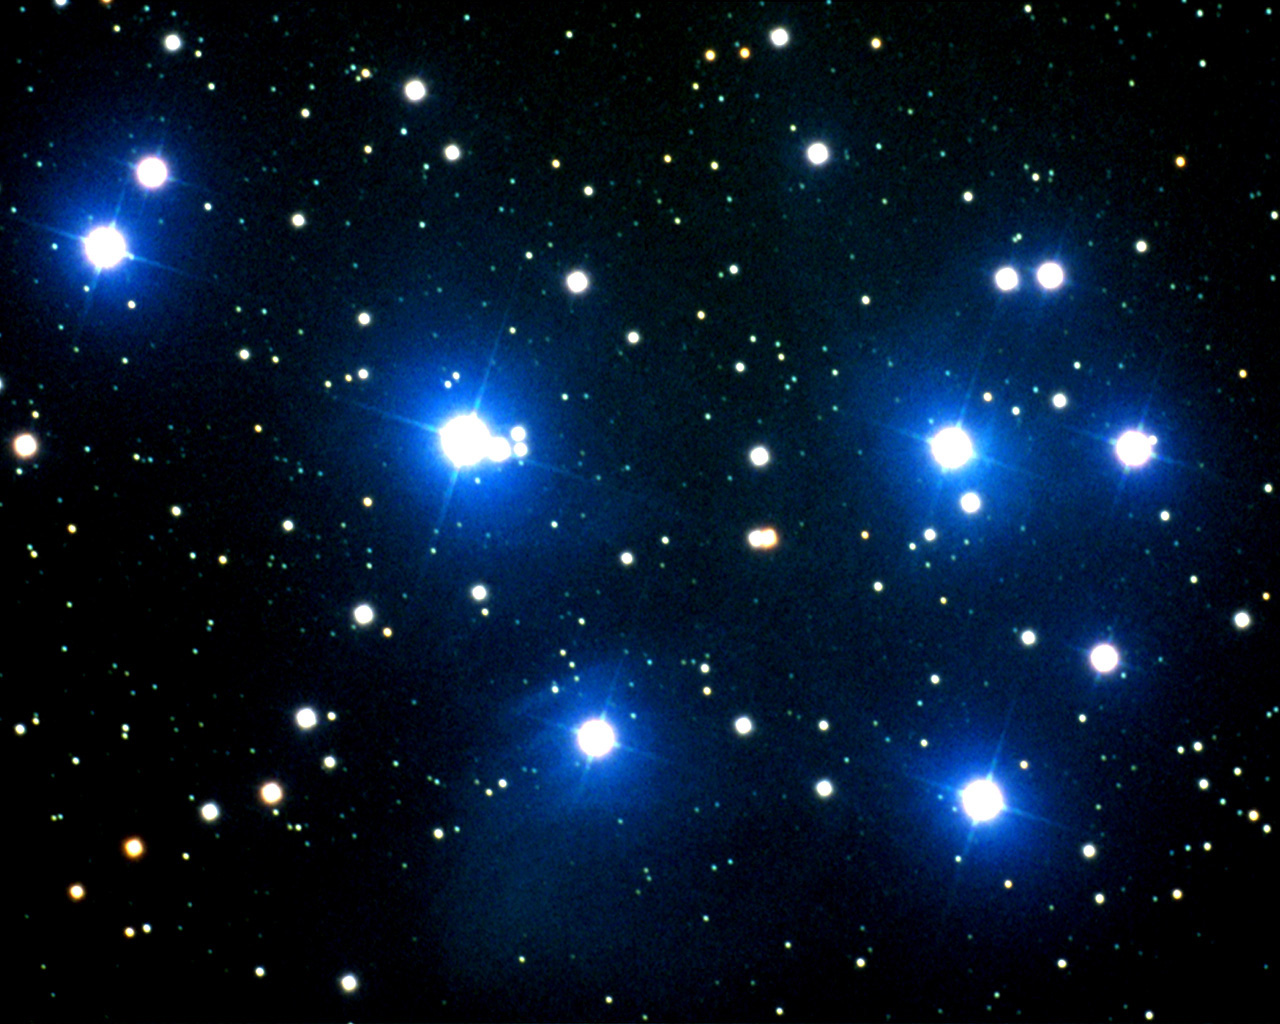 The Pleiadian Star Cluster – NEW DIMENSIONS Media Group